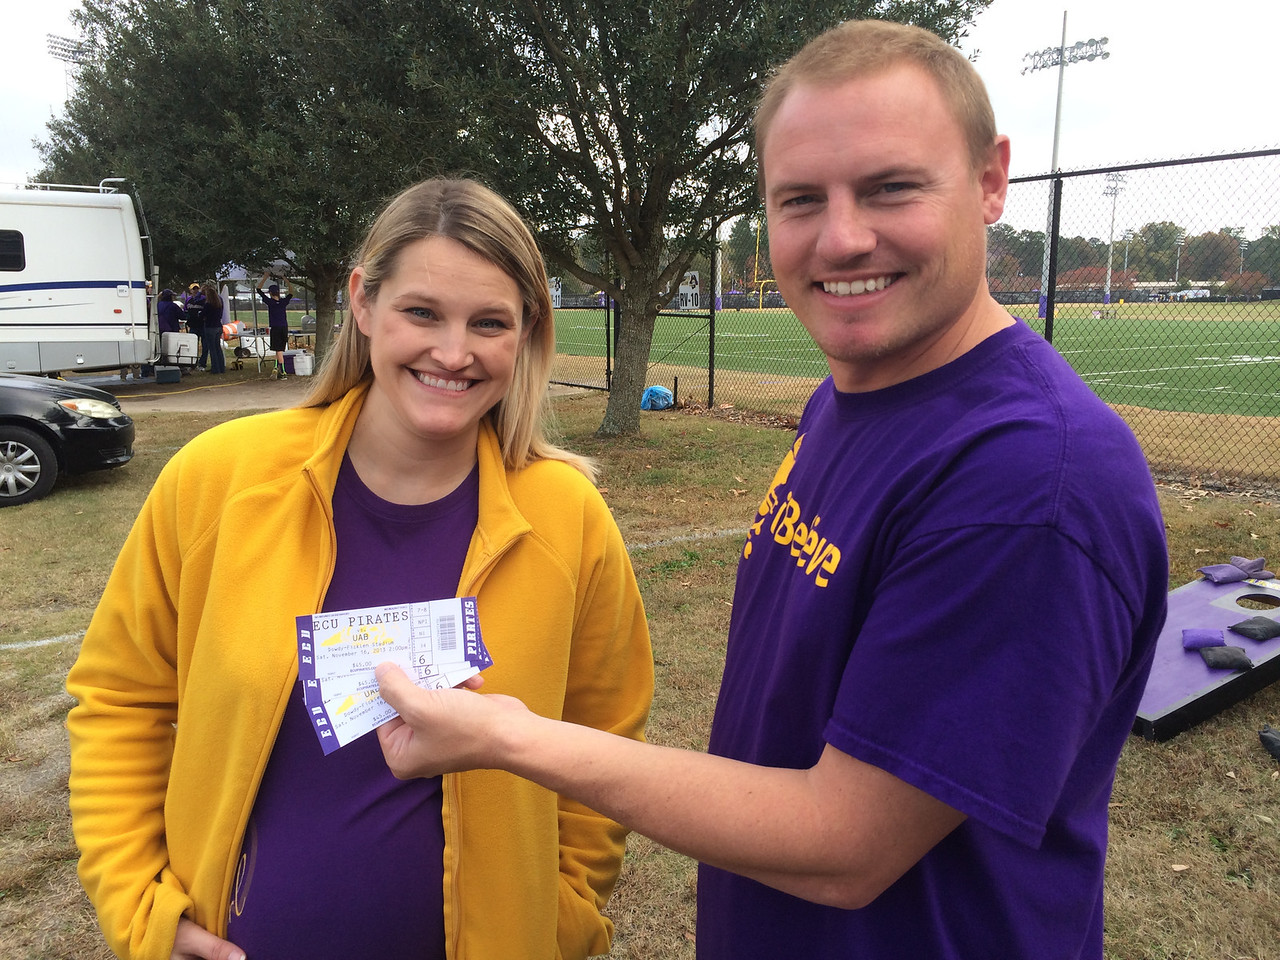 11/16 ECU vs UAB  Stephanie and JG with our handicap seats.